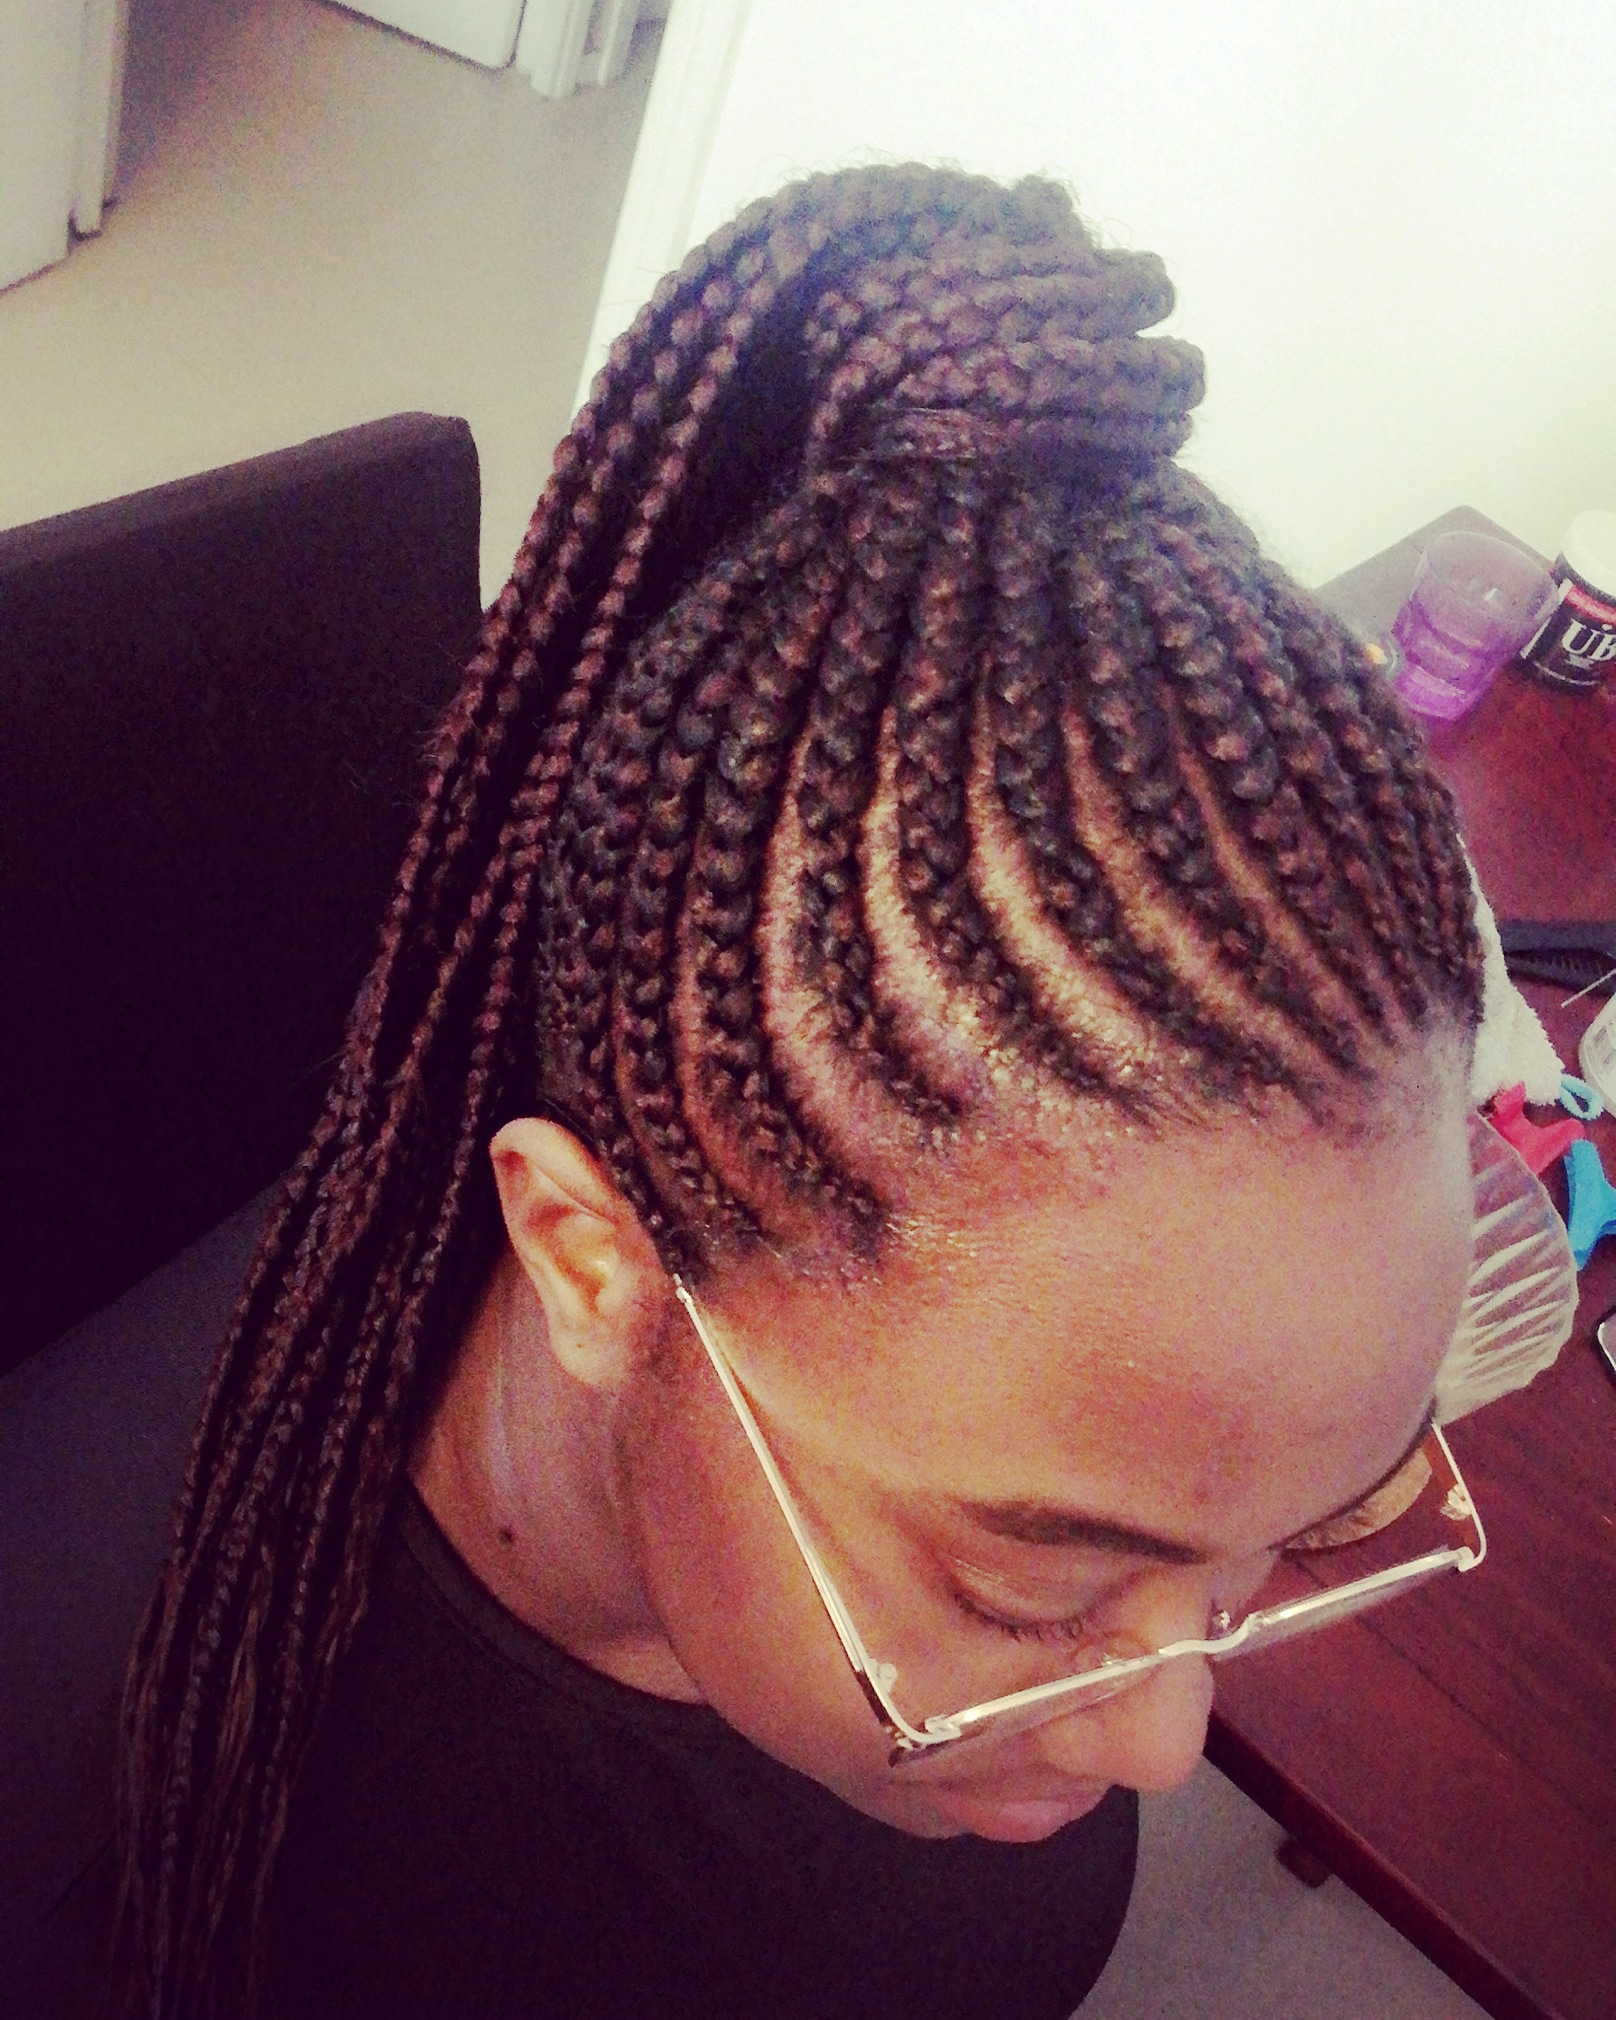 salon de coiffure afro tresse tresses box braids crochet braids vanilles tissages paris 75 77 78 91 92 93 94 95 NRTGHPPR